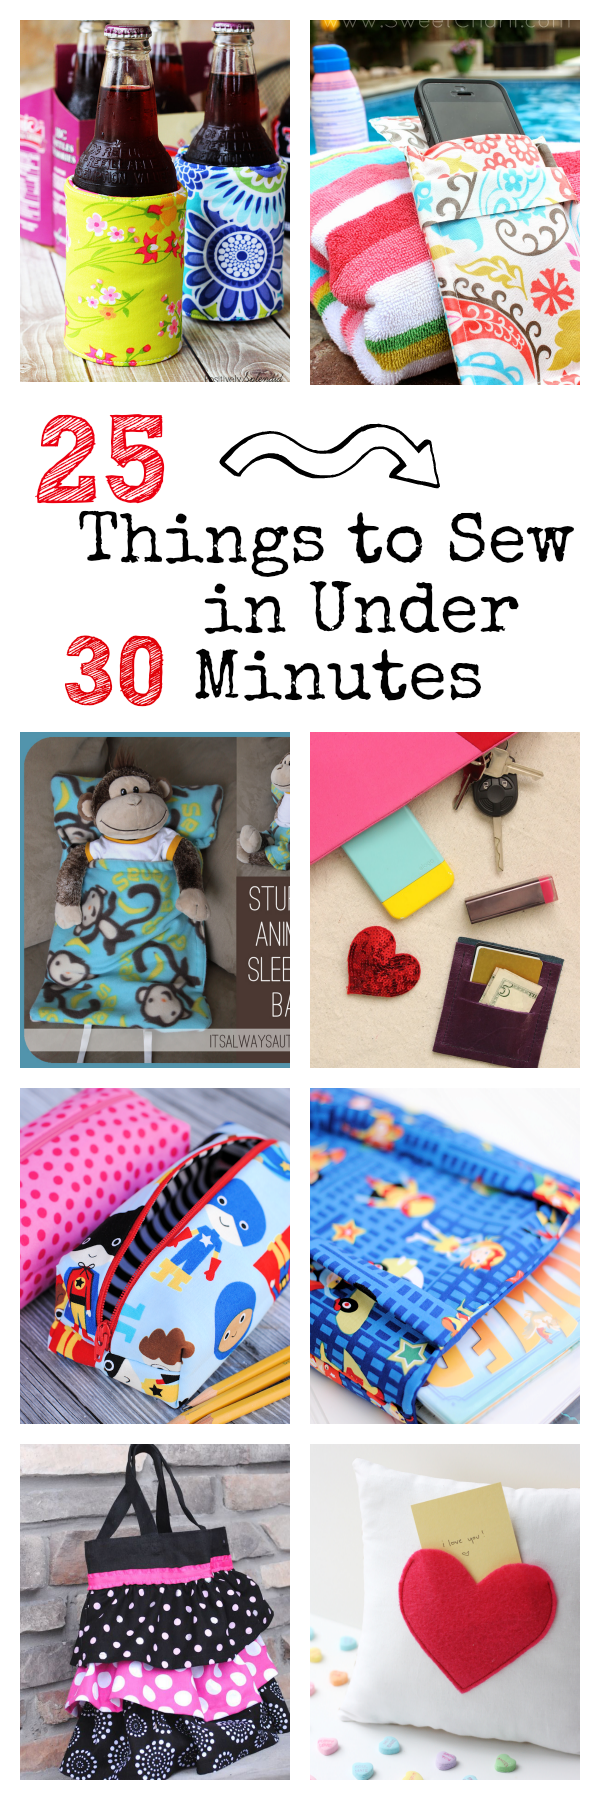 25 Things to Sew in Under 30 Minutes-Quick & Easy Projects